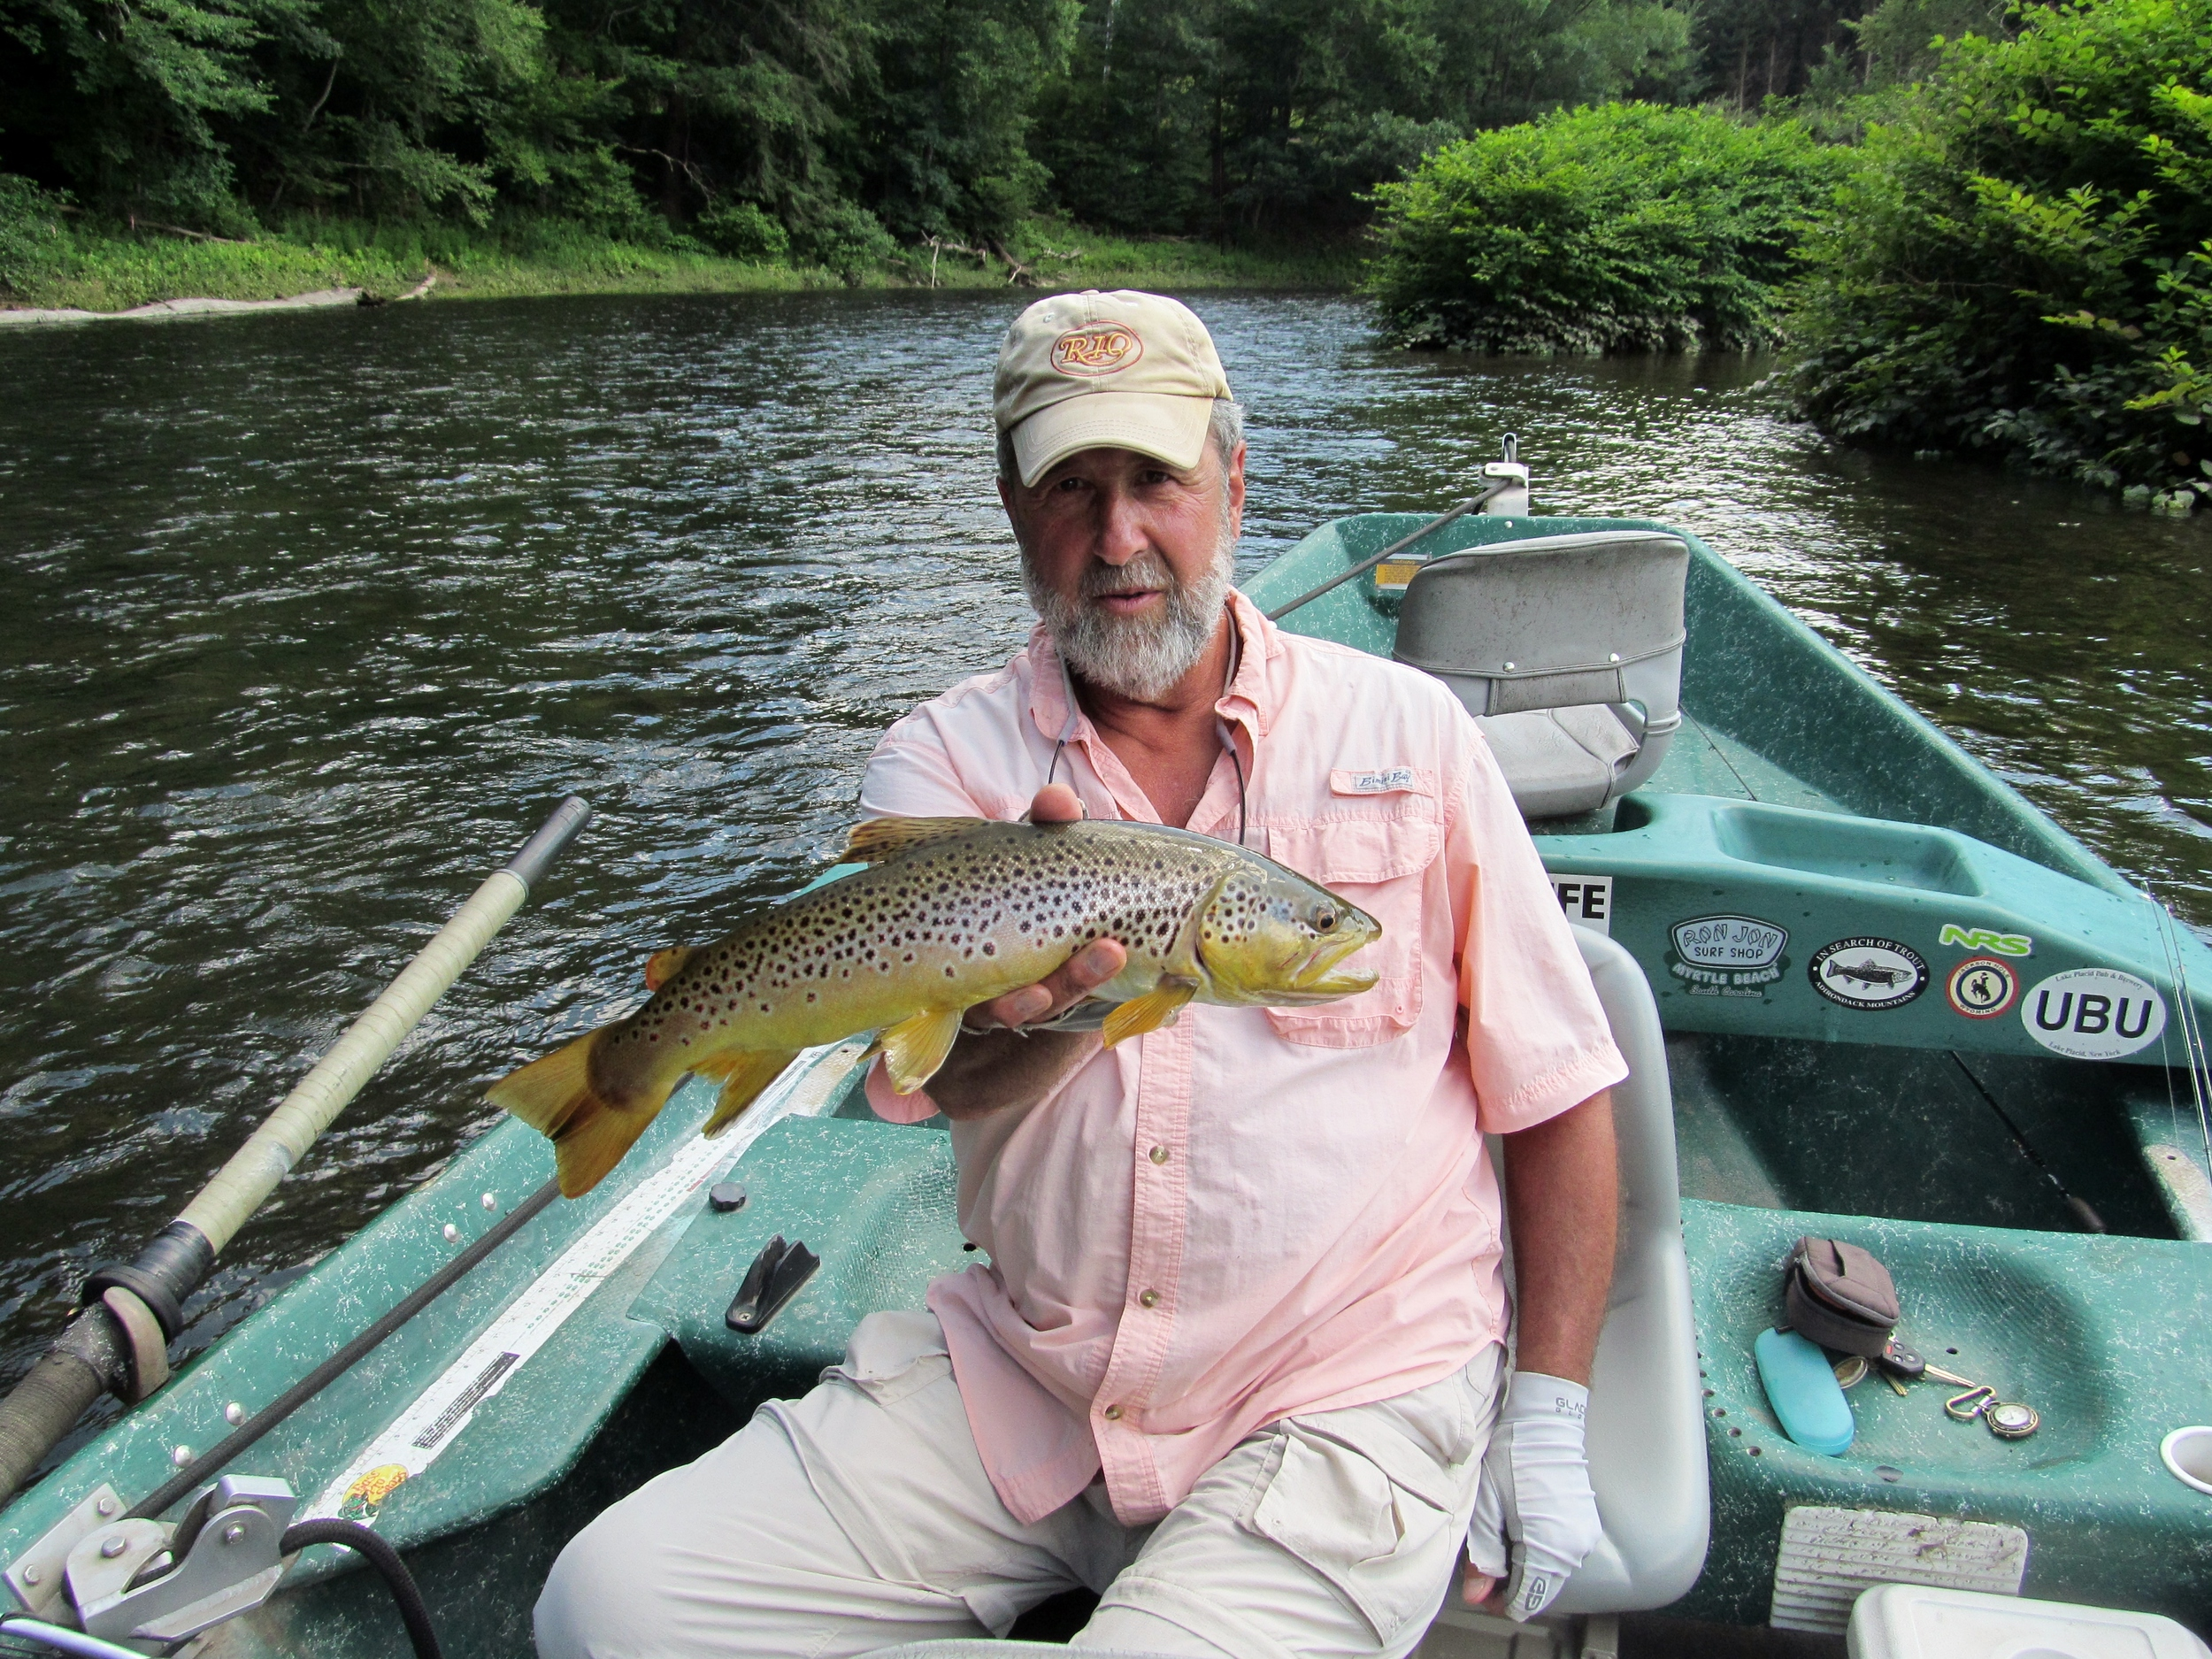 """7/10/15 Guide Mike P. Holding a nice 20"""" Brown trout"""